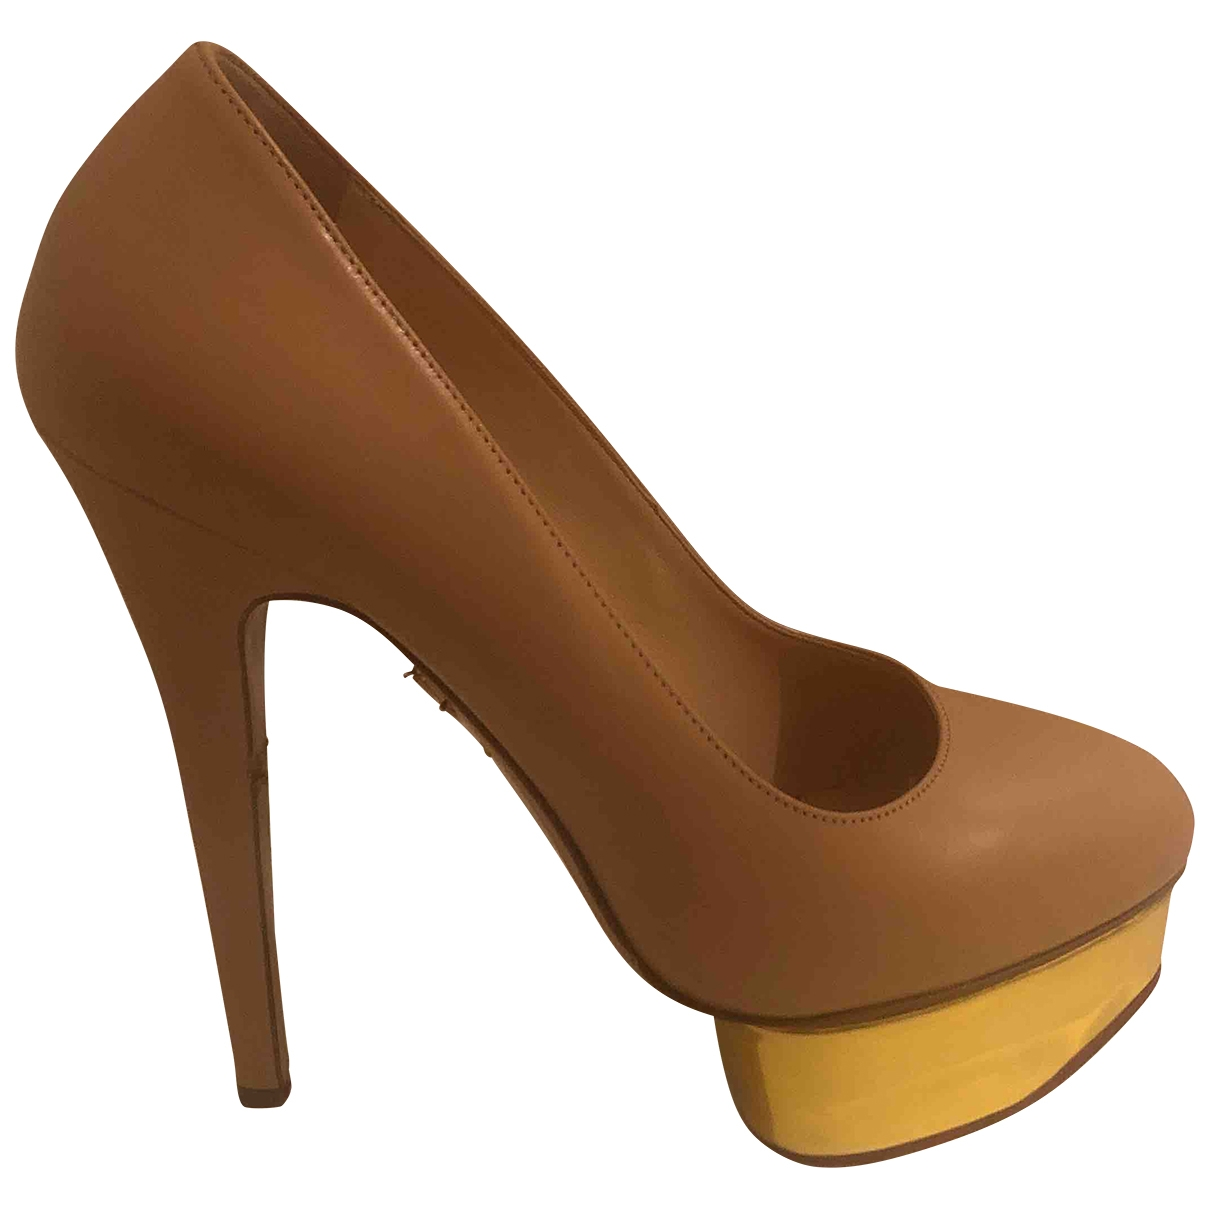 Charlotte Olympia Dolly Leather Heels for Women 38.5 EU